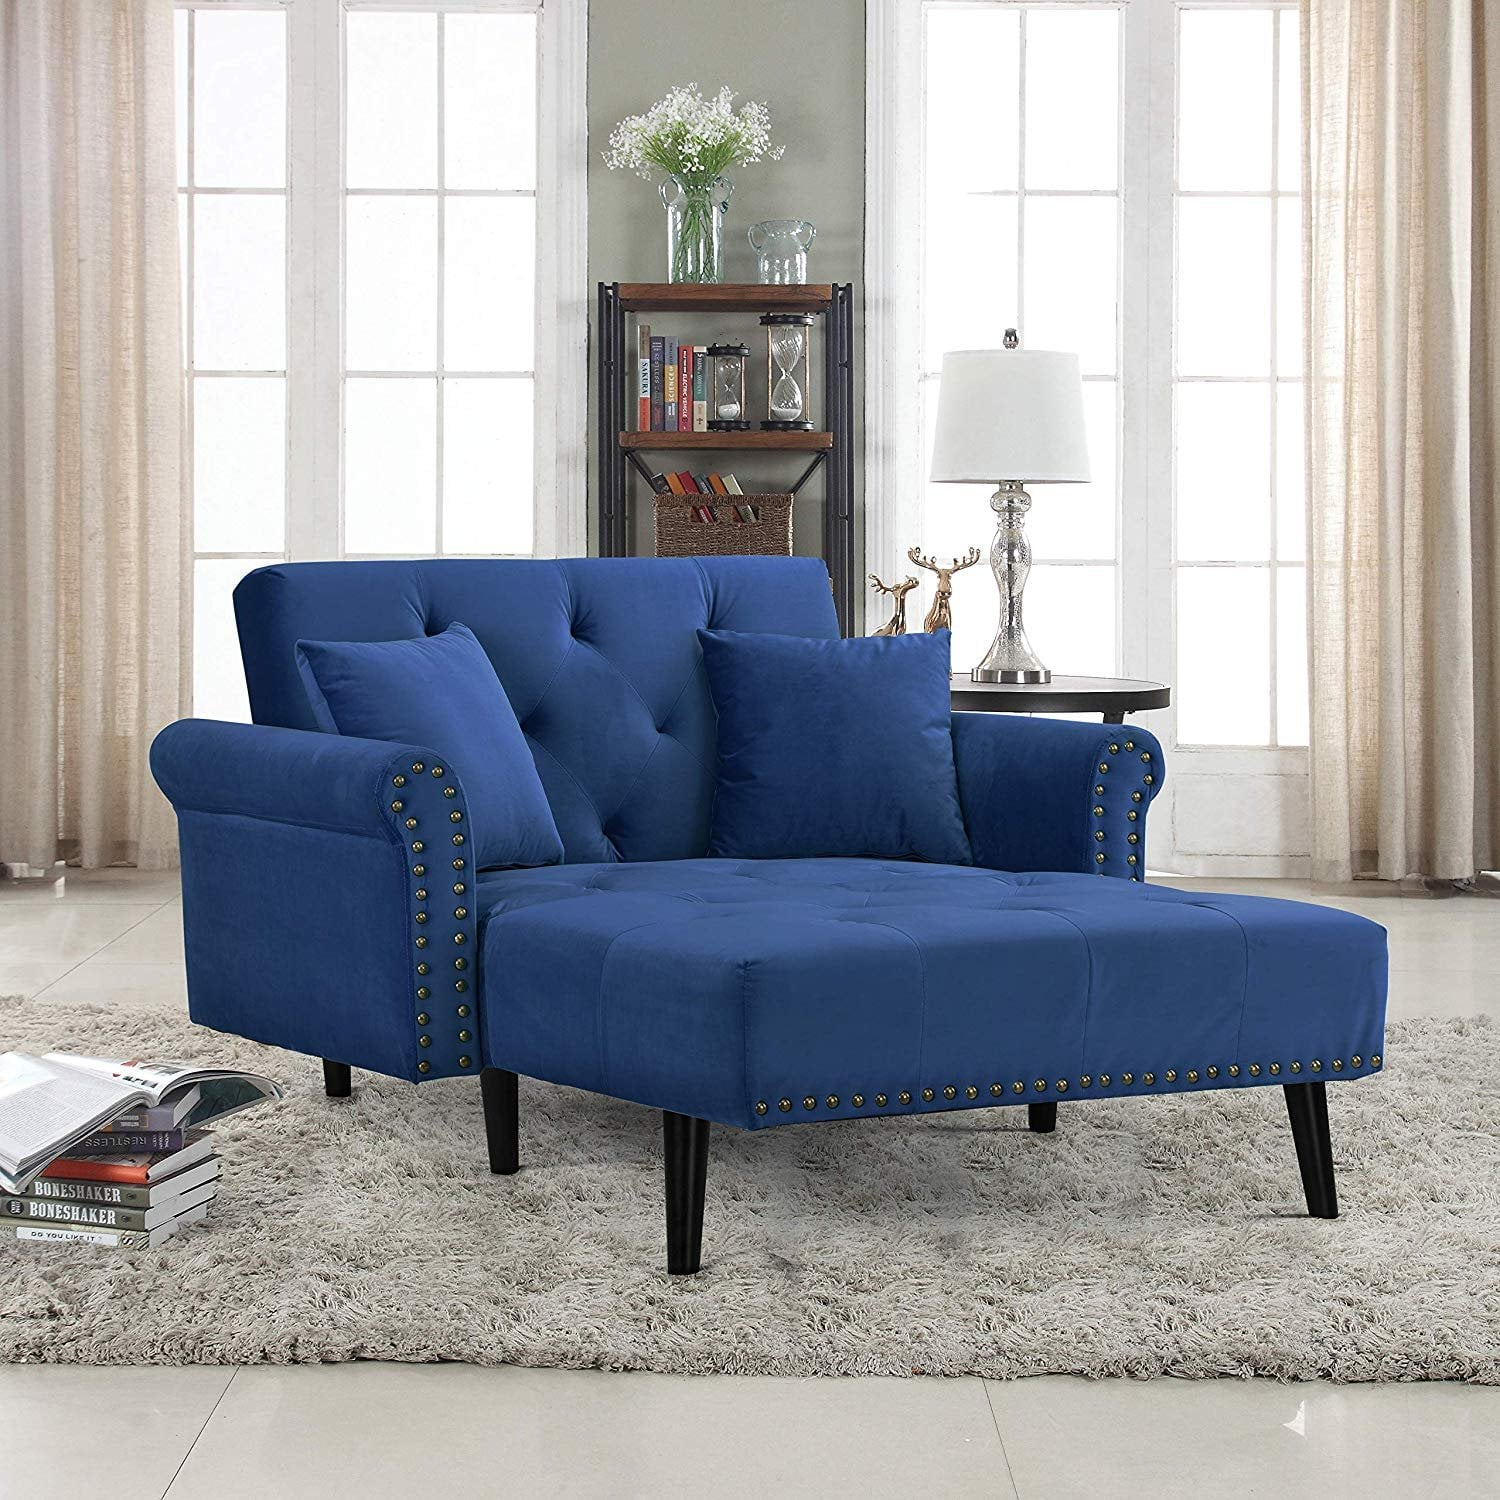 Modern Velvet Fabric Recliner Sleeper Chaise Lounge Small Apartment These 65 Space Saving Furniture Pieces Will Make Life Much Easier Popsugar Home Photo 9